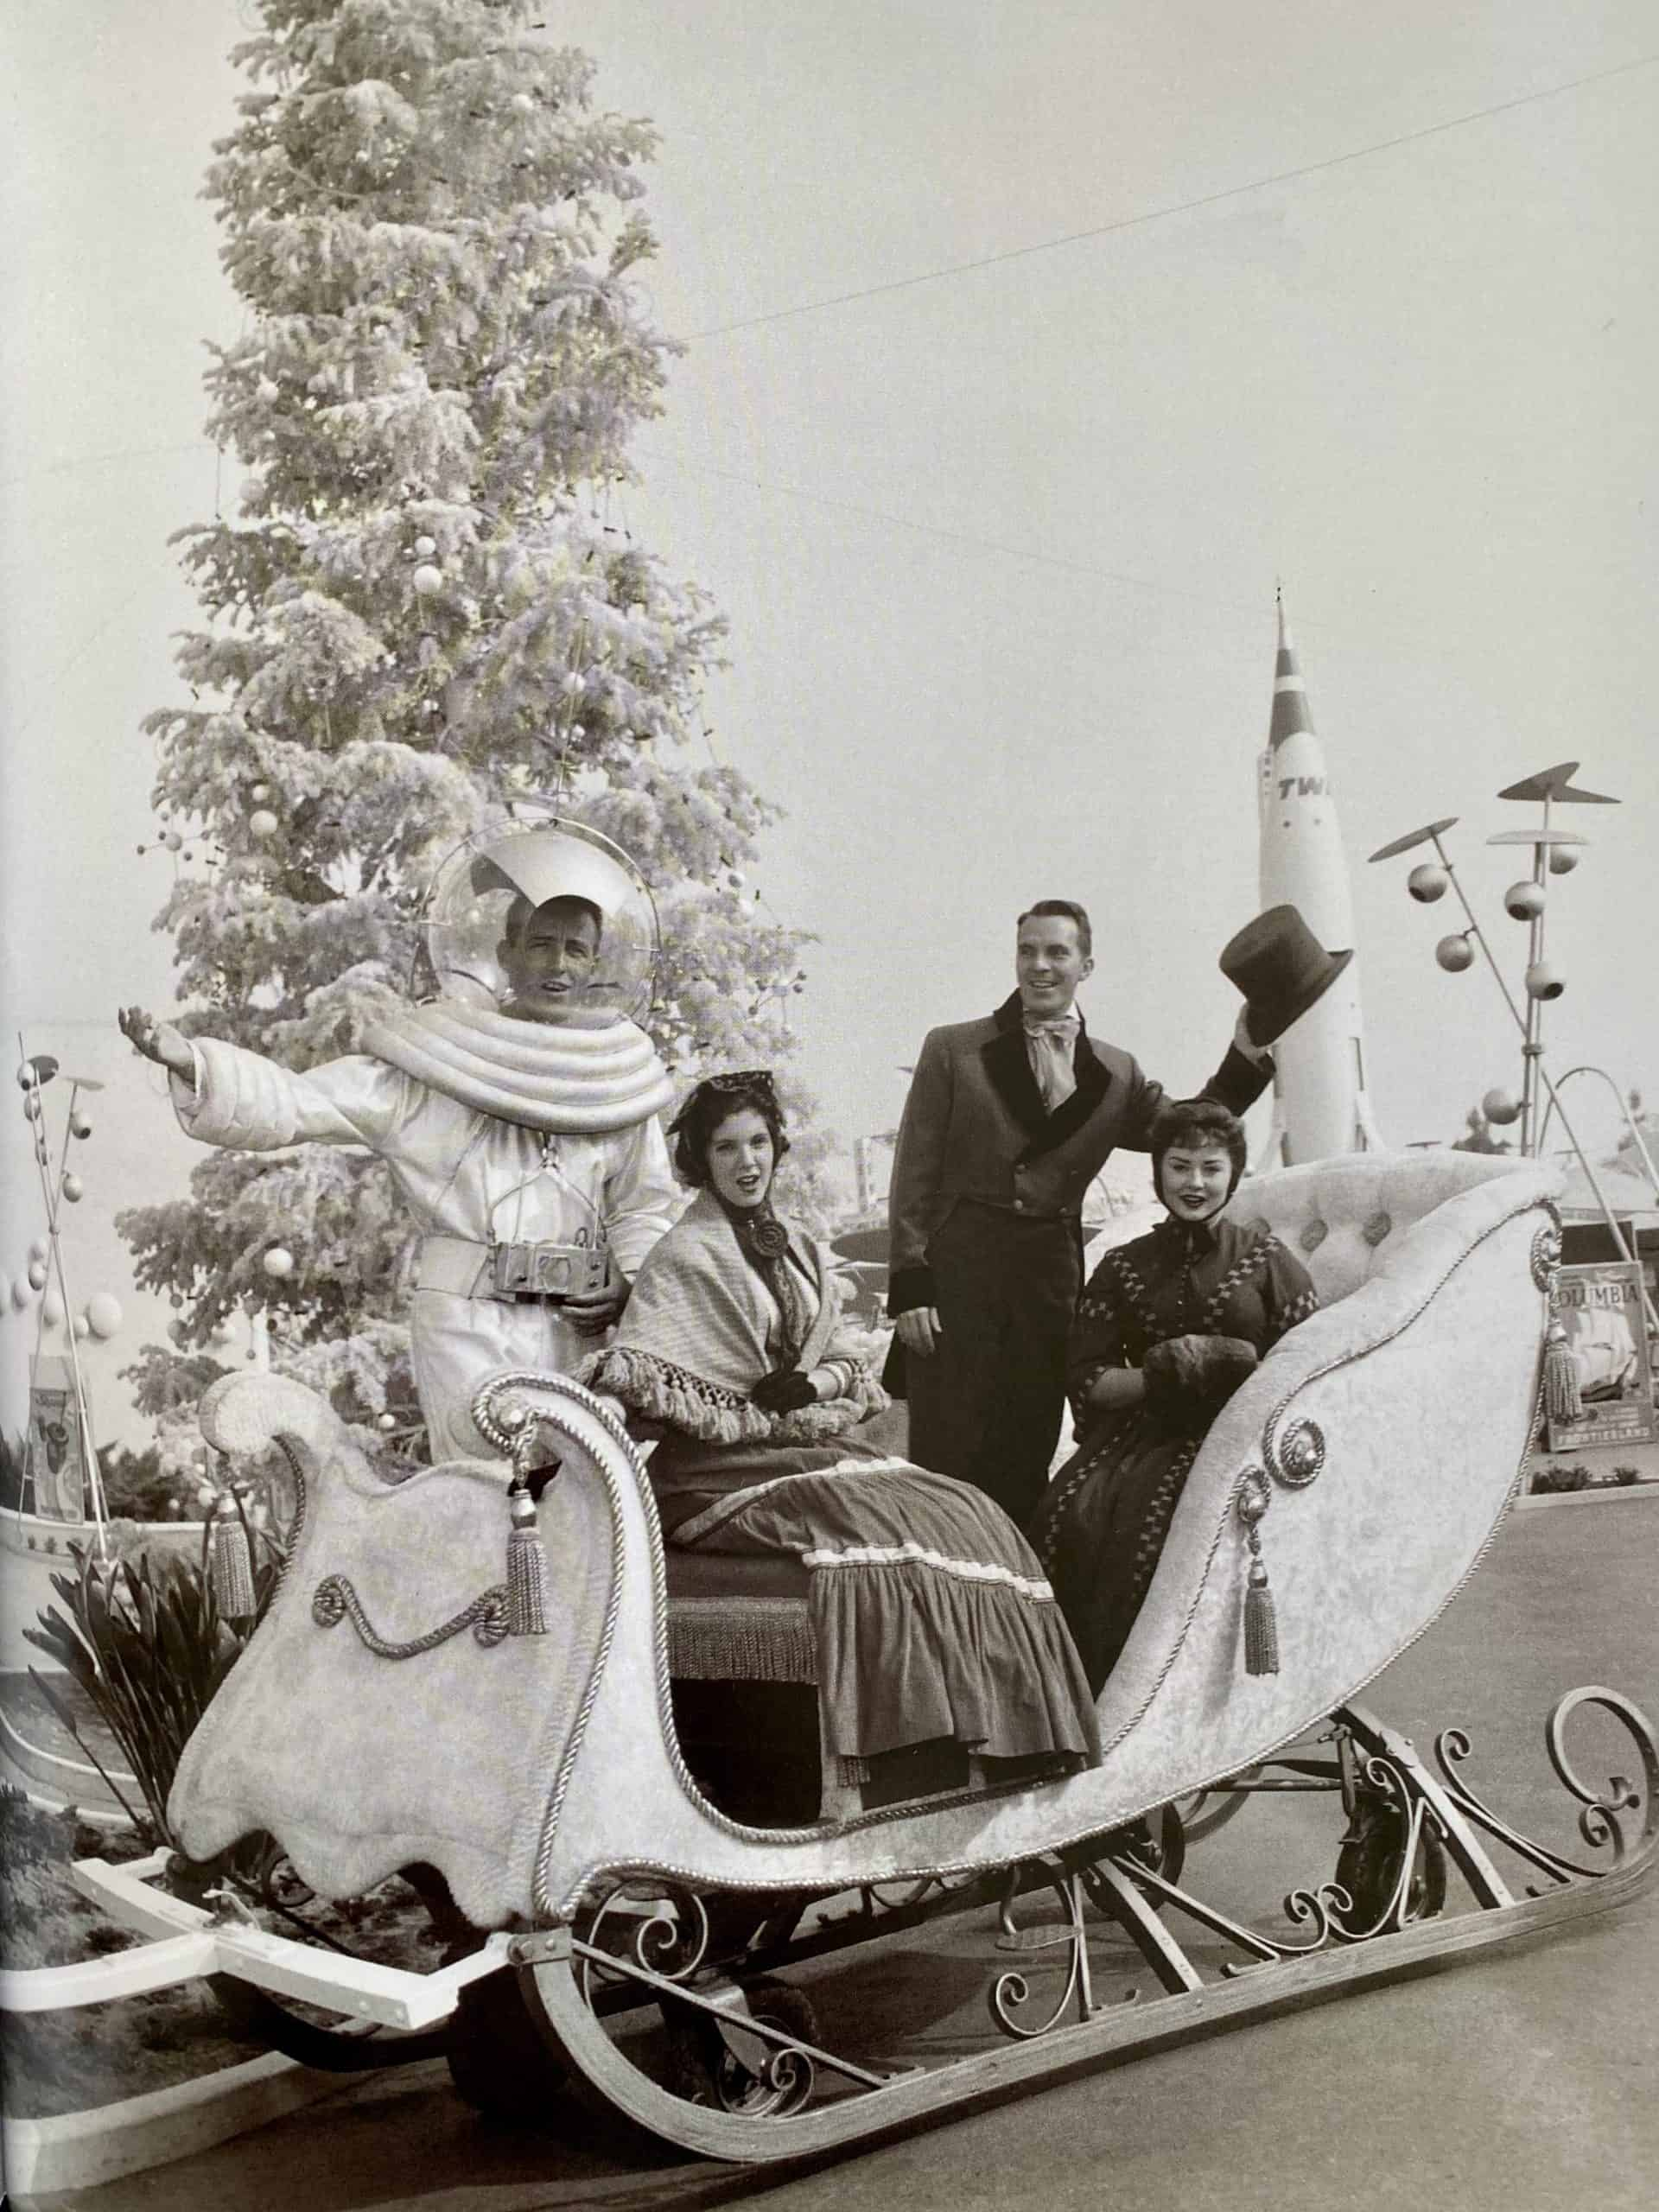 Disneyland holidays Tomorrowland